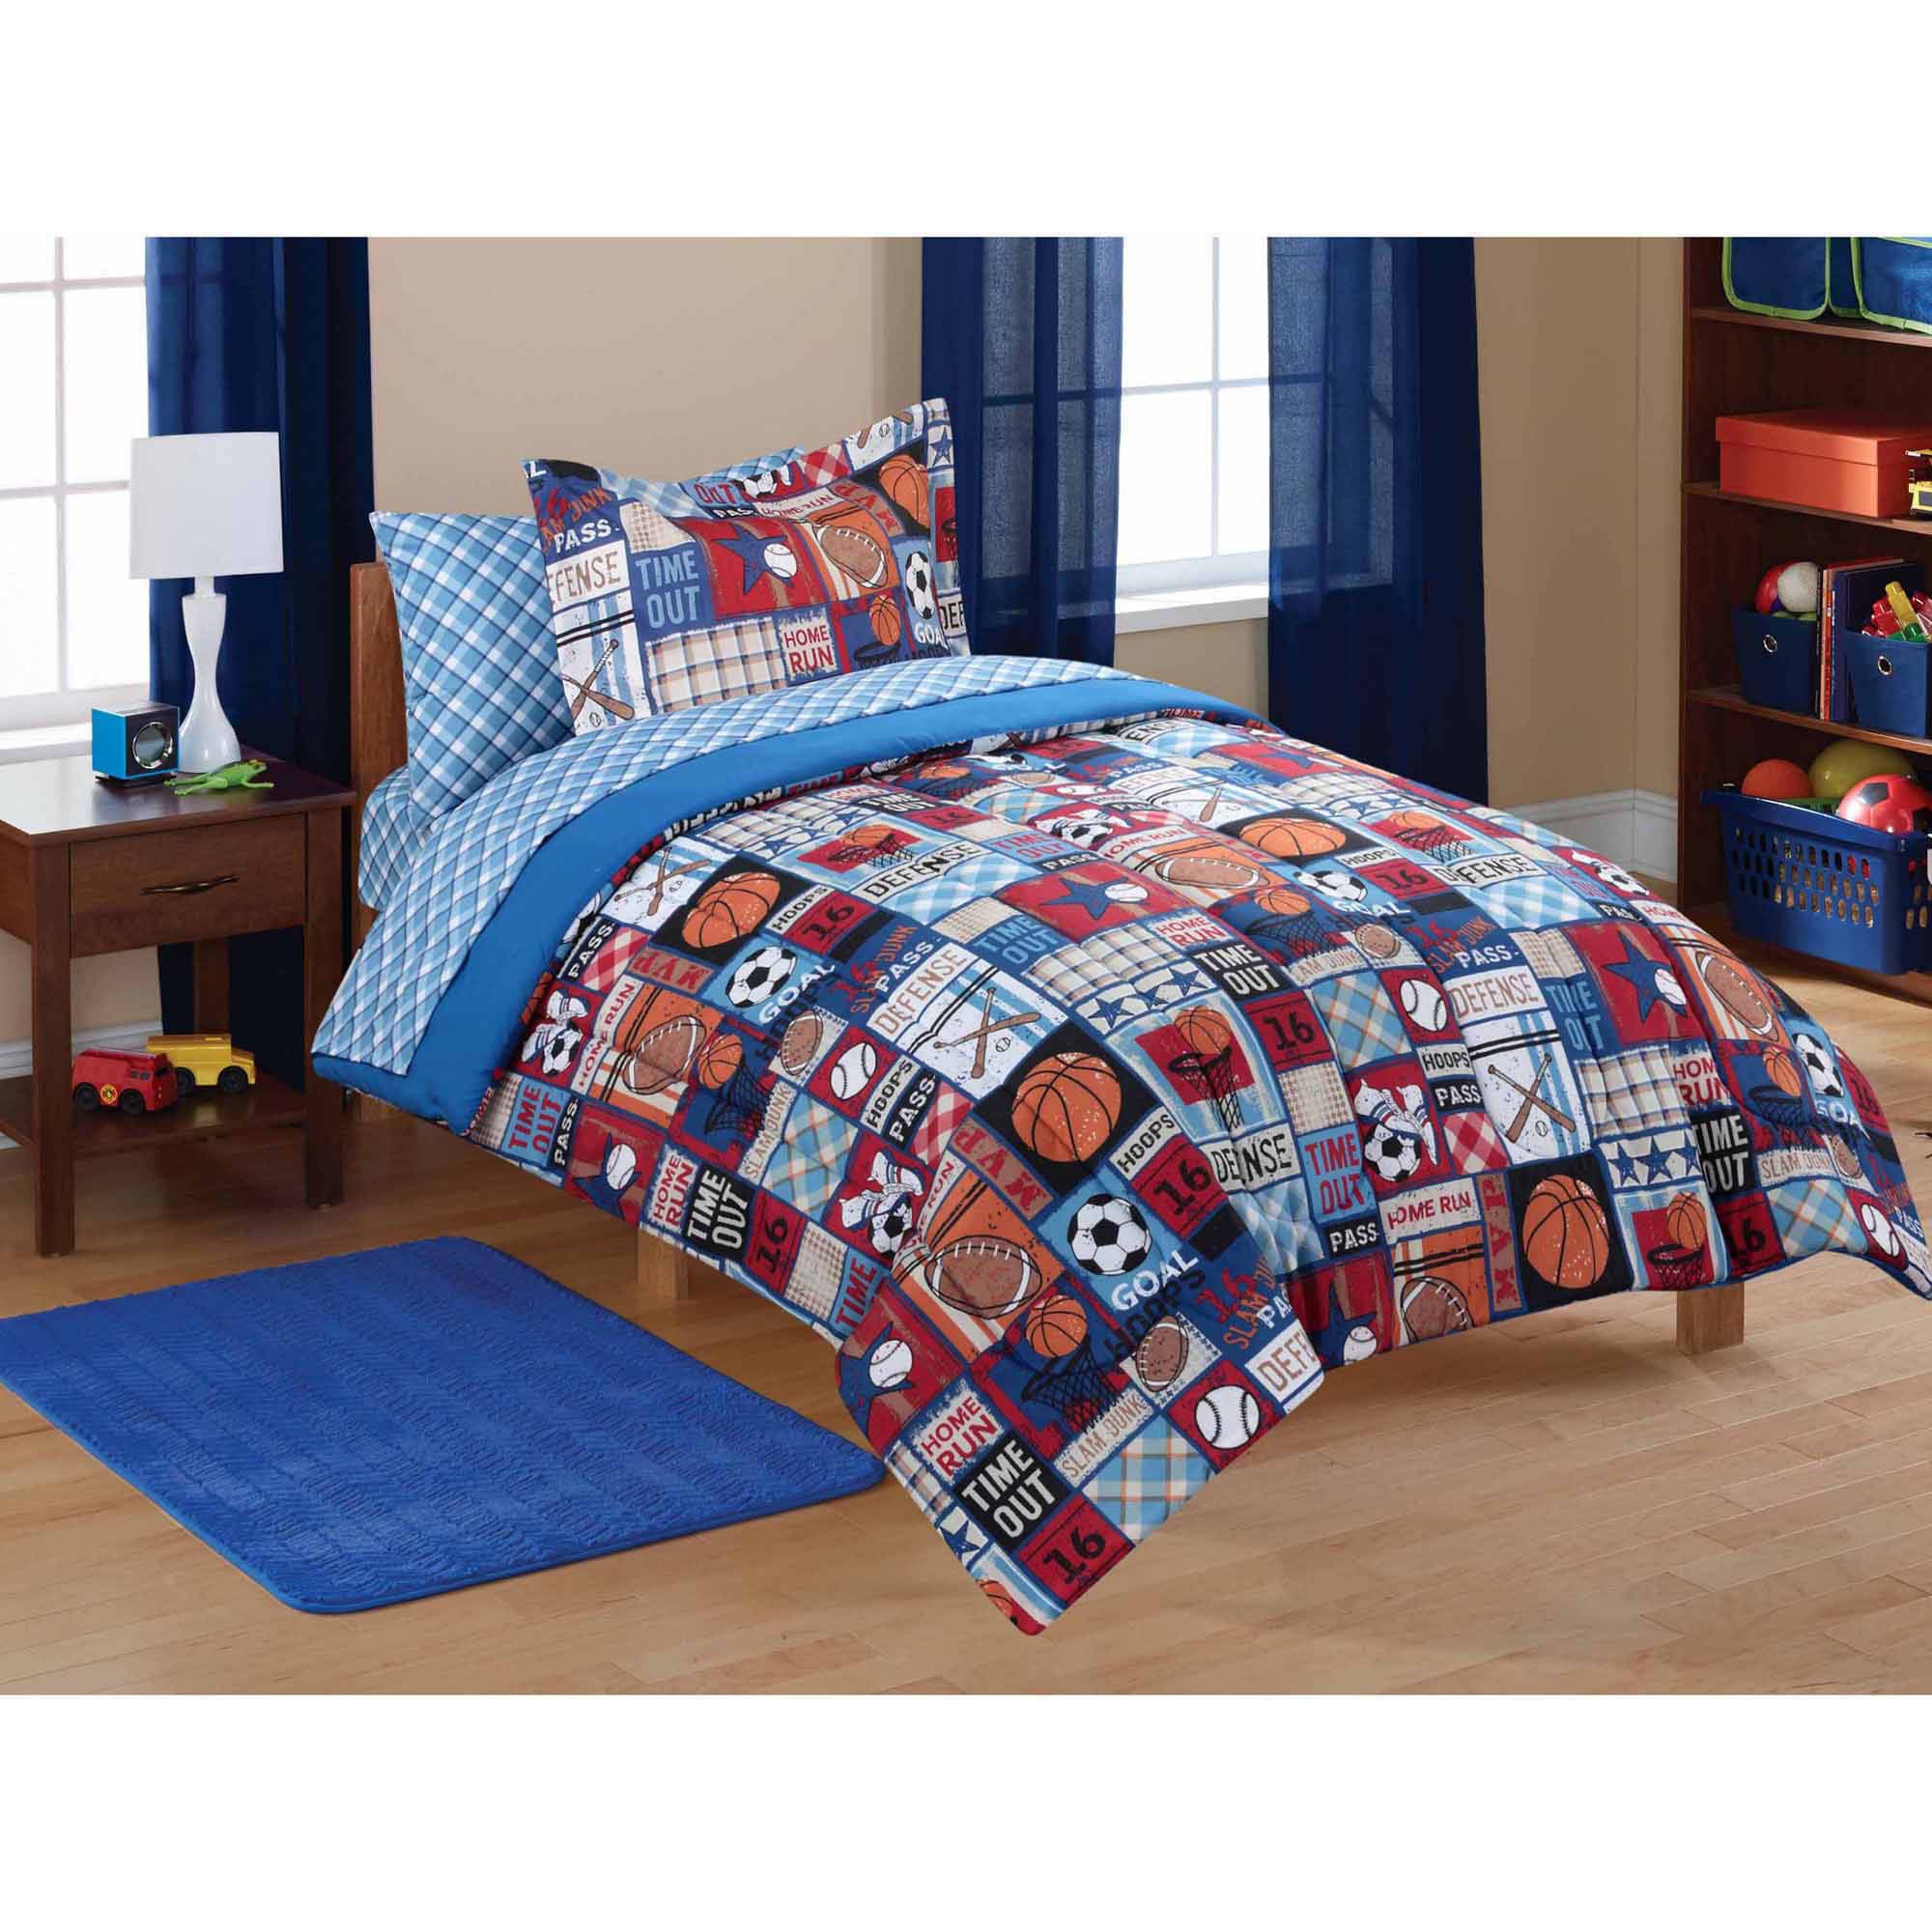 Mainstays Kids' Sports Patch Coordinated Bed in a Bag